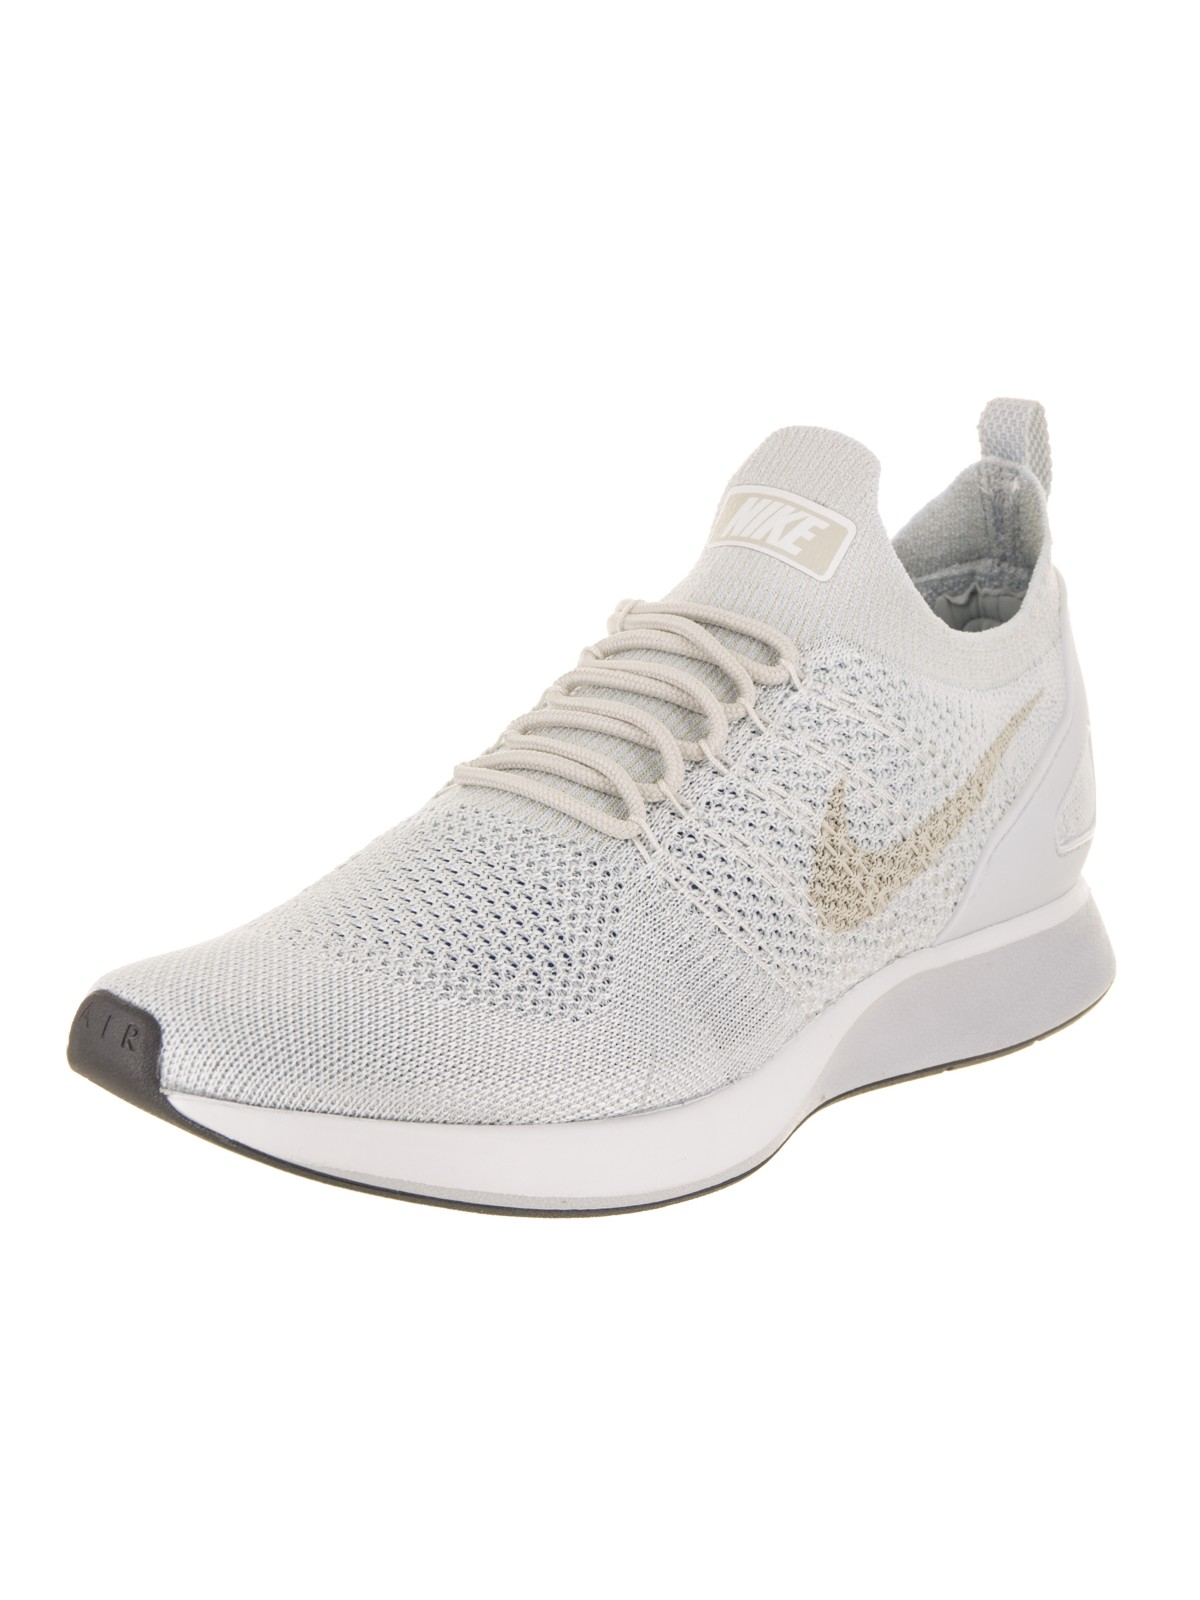 cheap for discount 071bb 3734e ... usa nike air zoom mariah flyknit racer mens shoes pure platinum dark  grey 918264 011 walmart